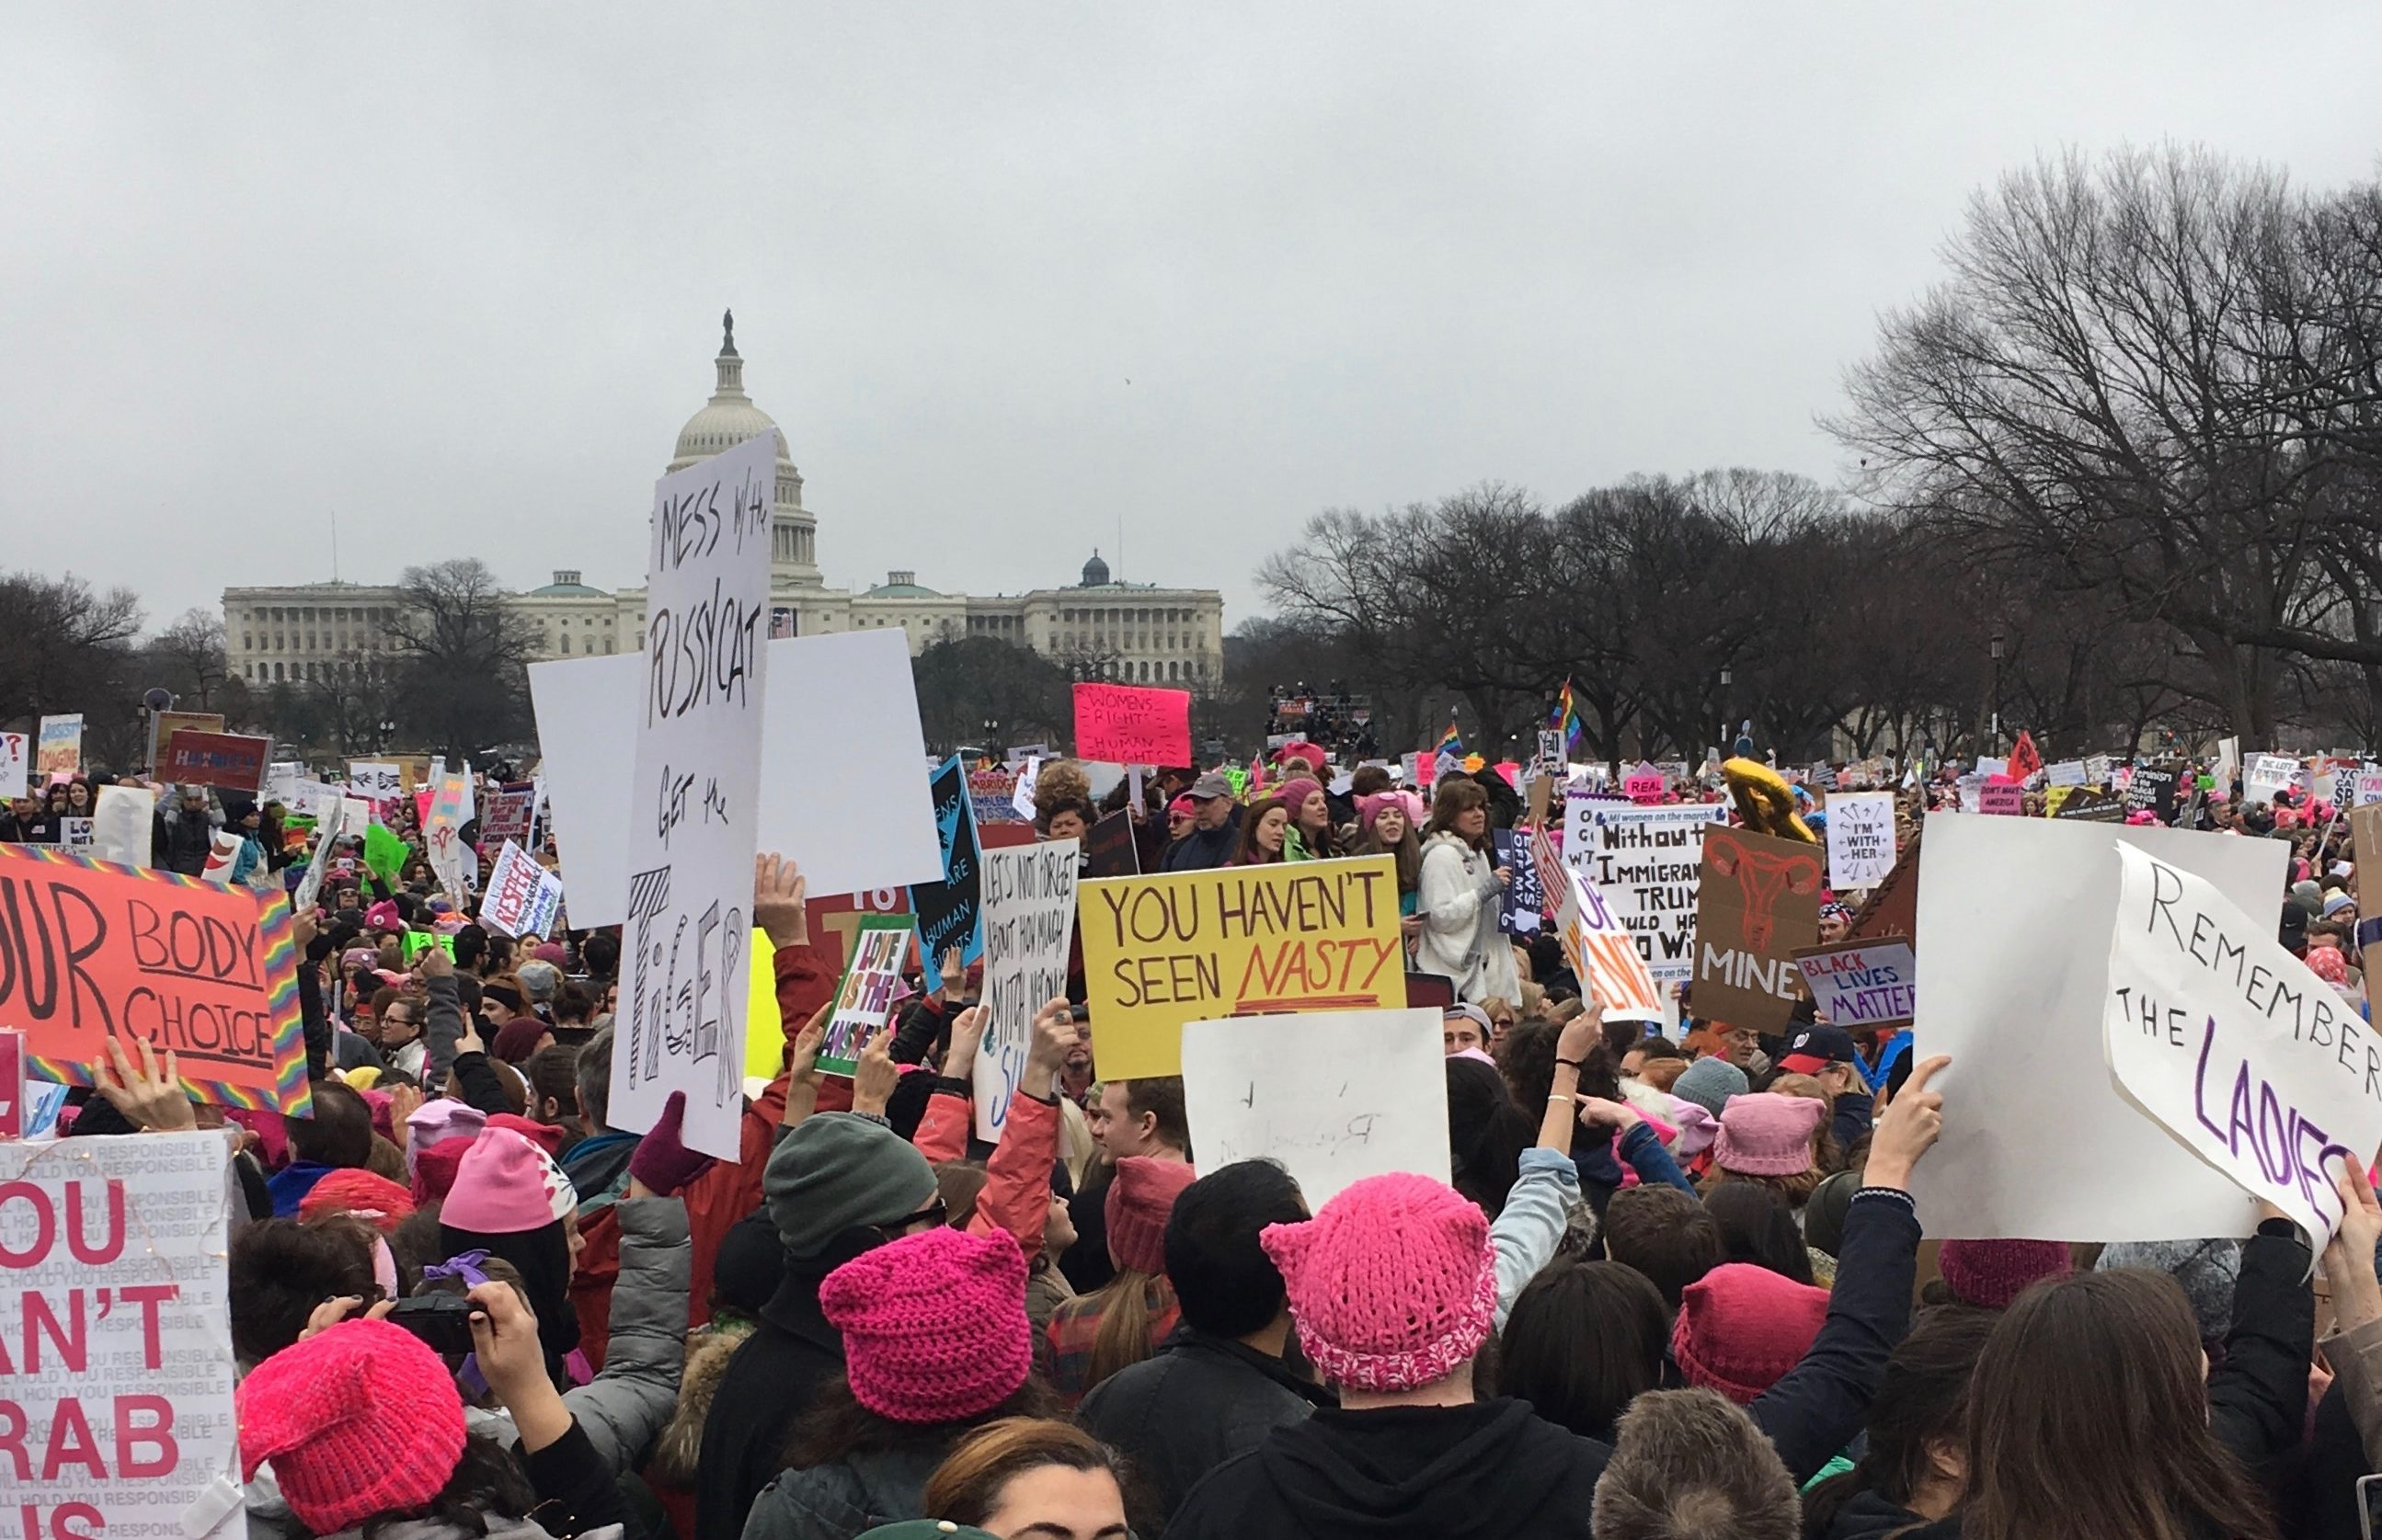 On Jan. 21, nearly 1 million people marched in support of equal rights in Washington D.C.